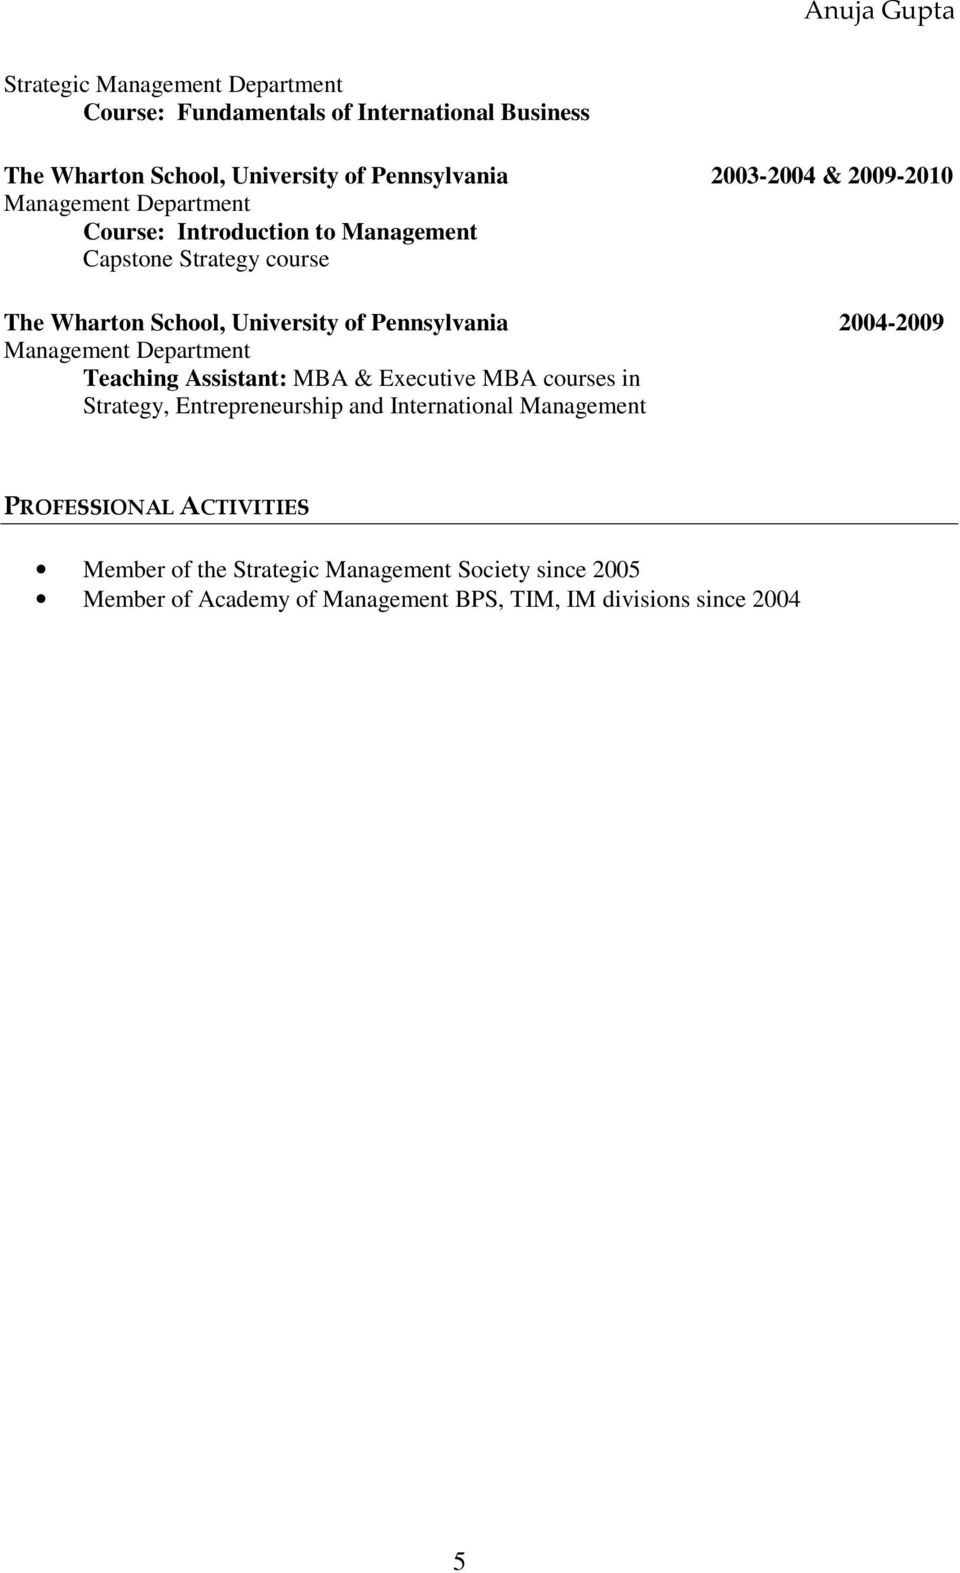 2004-2009 Management Department Teaching Assistant: MBA & Executive MBA courses in Strategy, Entrepreneurship and International Management